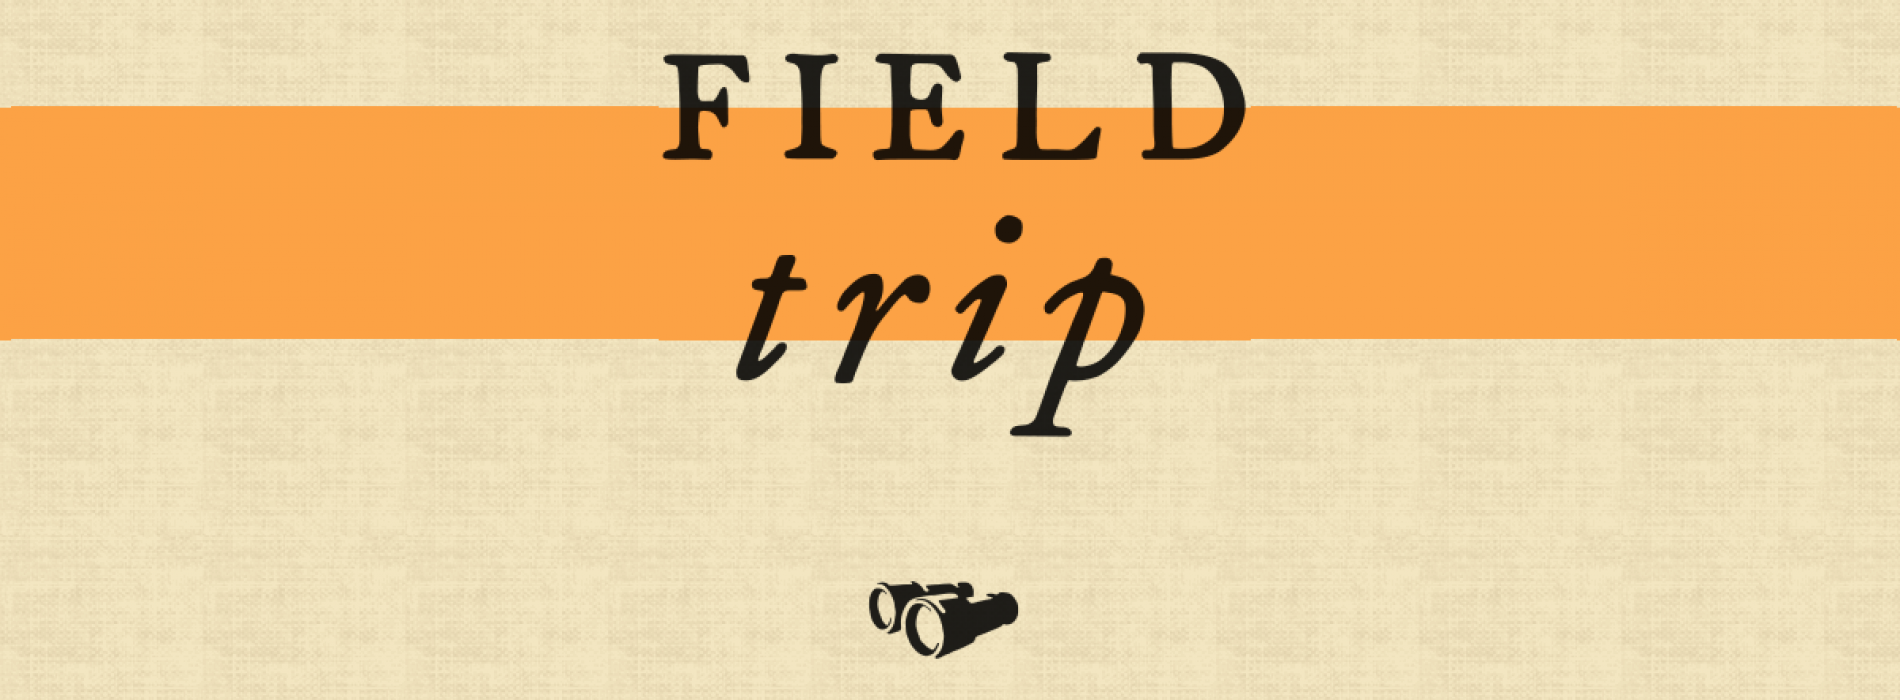 Field Trip app updated with new layout and content